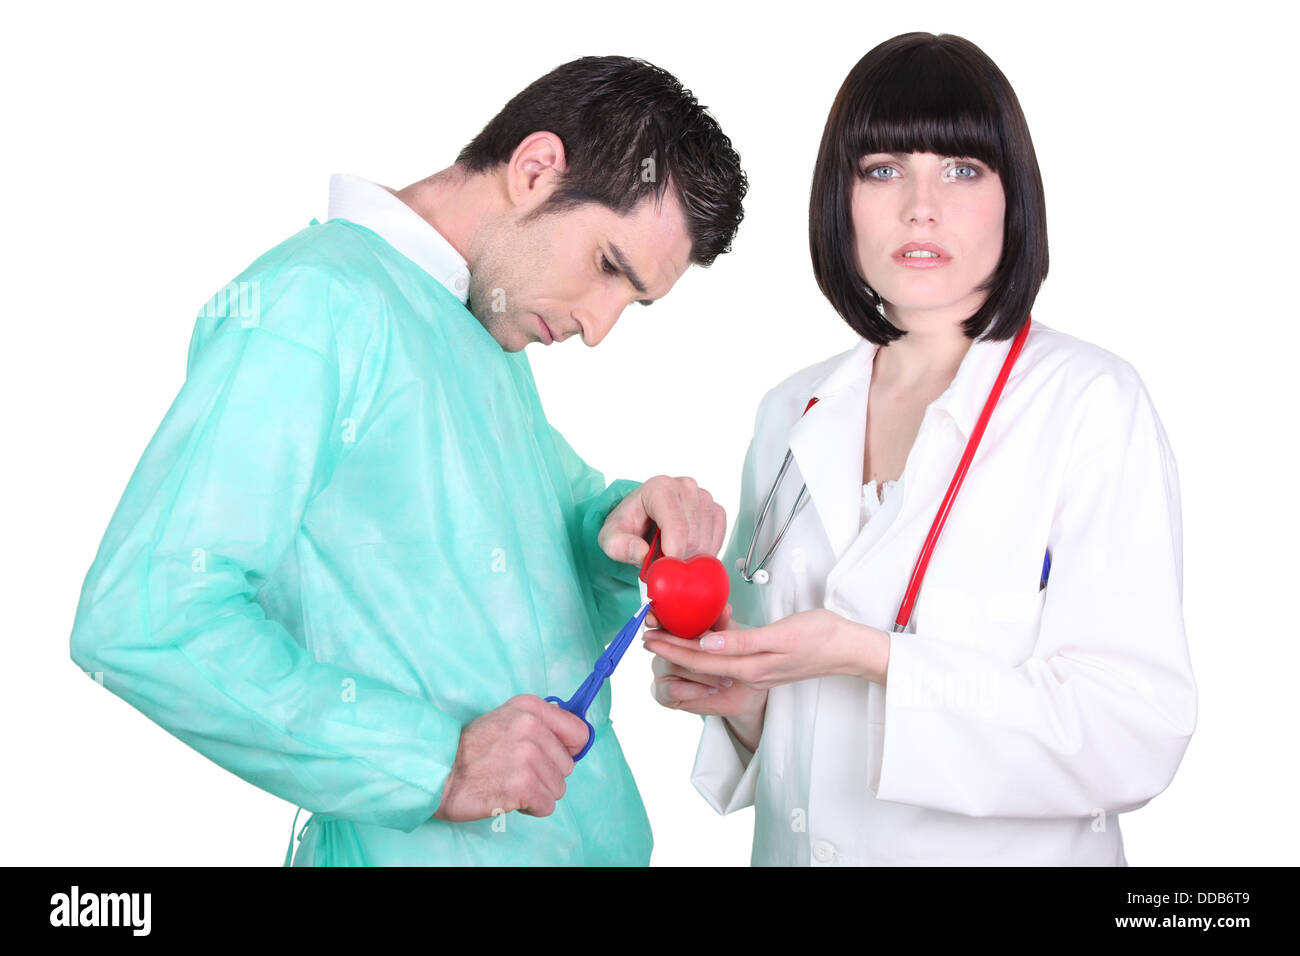 Doctors performing open heart surgery - Stock Image